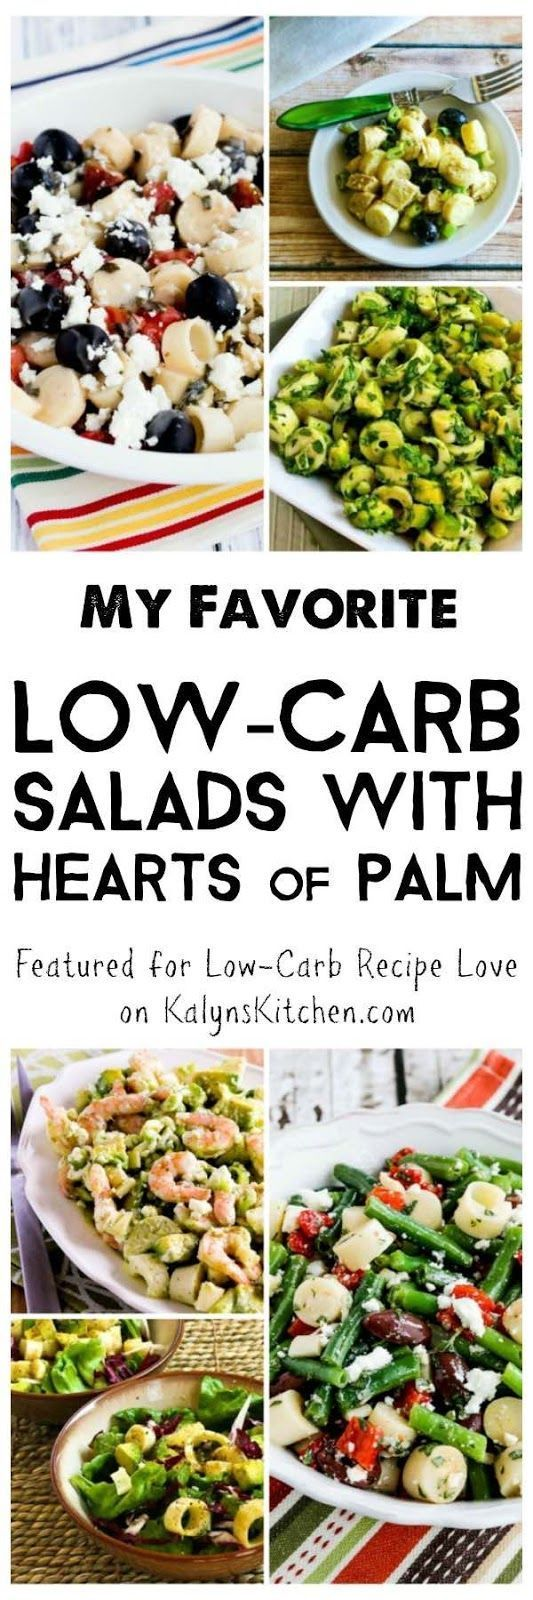 I'm crazy over hearts of palm, and here are My Favorite Low-Carb Salads with Hearts of Palm, perfect for light summer meals. If you haven't tried them,  hearts of palm are low in carbs and gluten-free and they're so delicious!  [featured for Low-Carb Recipe Love on KalynsKitchen.com]